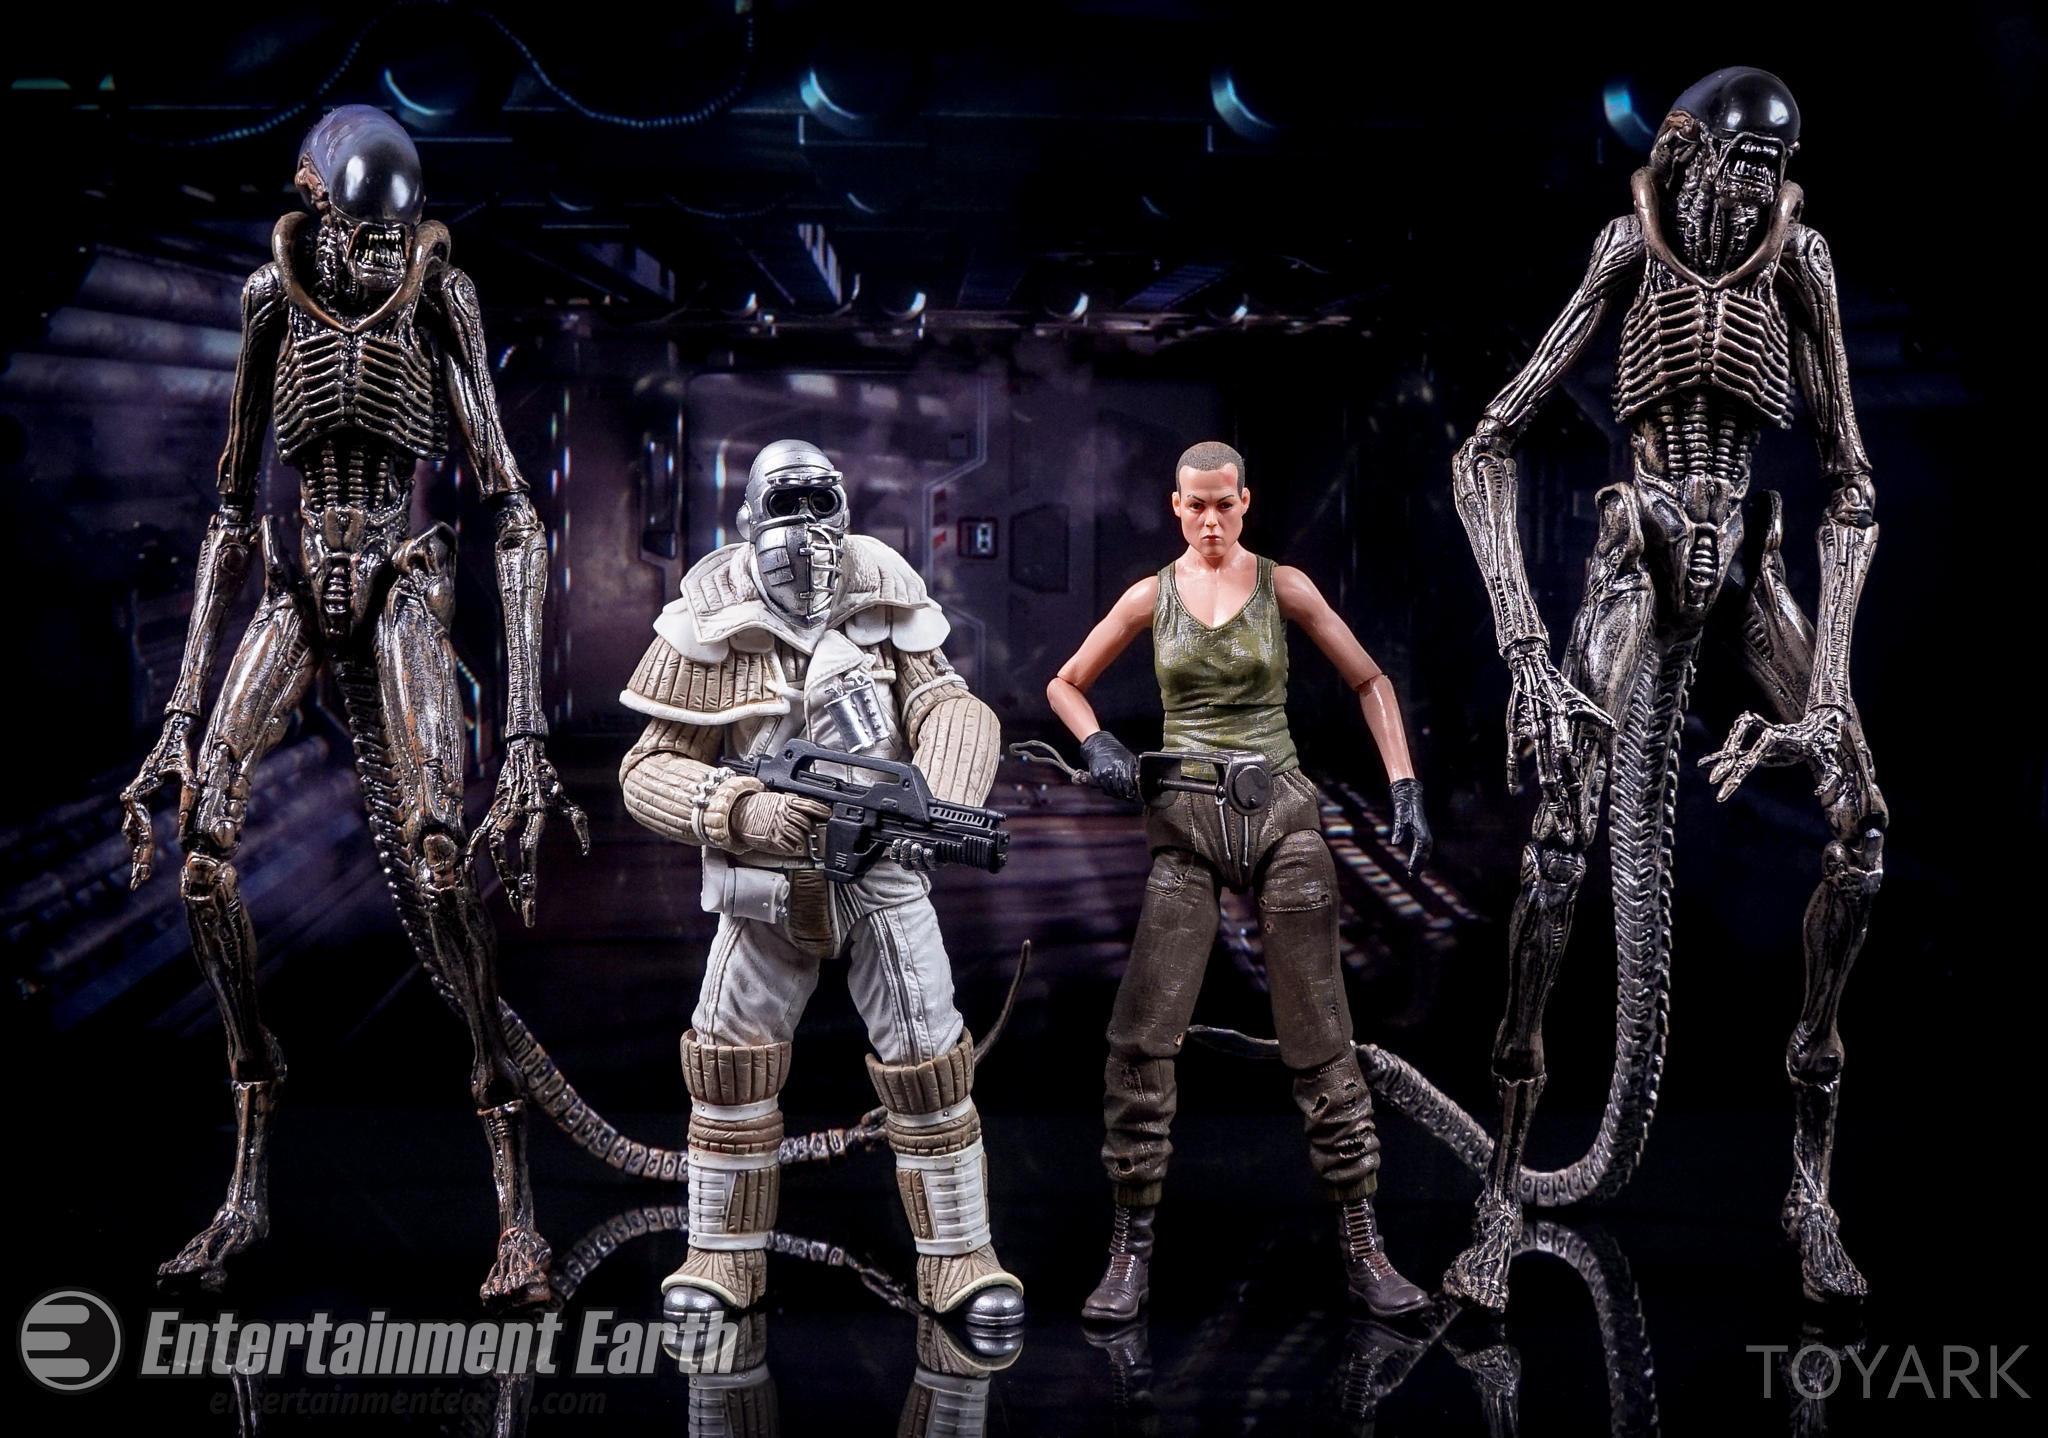 http://news.toyark.com/wp-content/uploads/sites/4/2016/07/Alien-Series-8-NECA-090.jpg